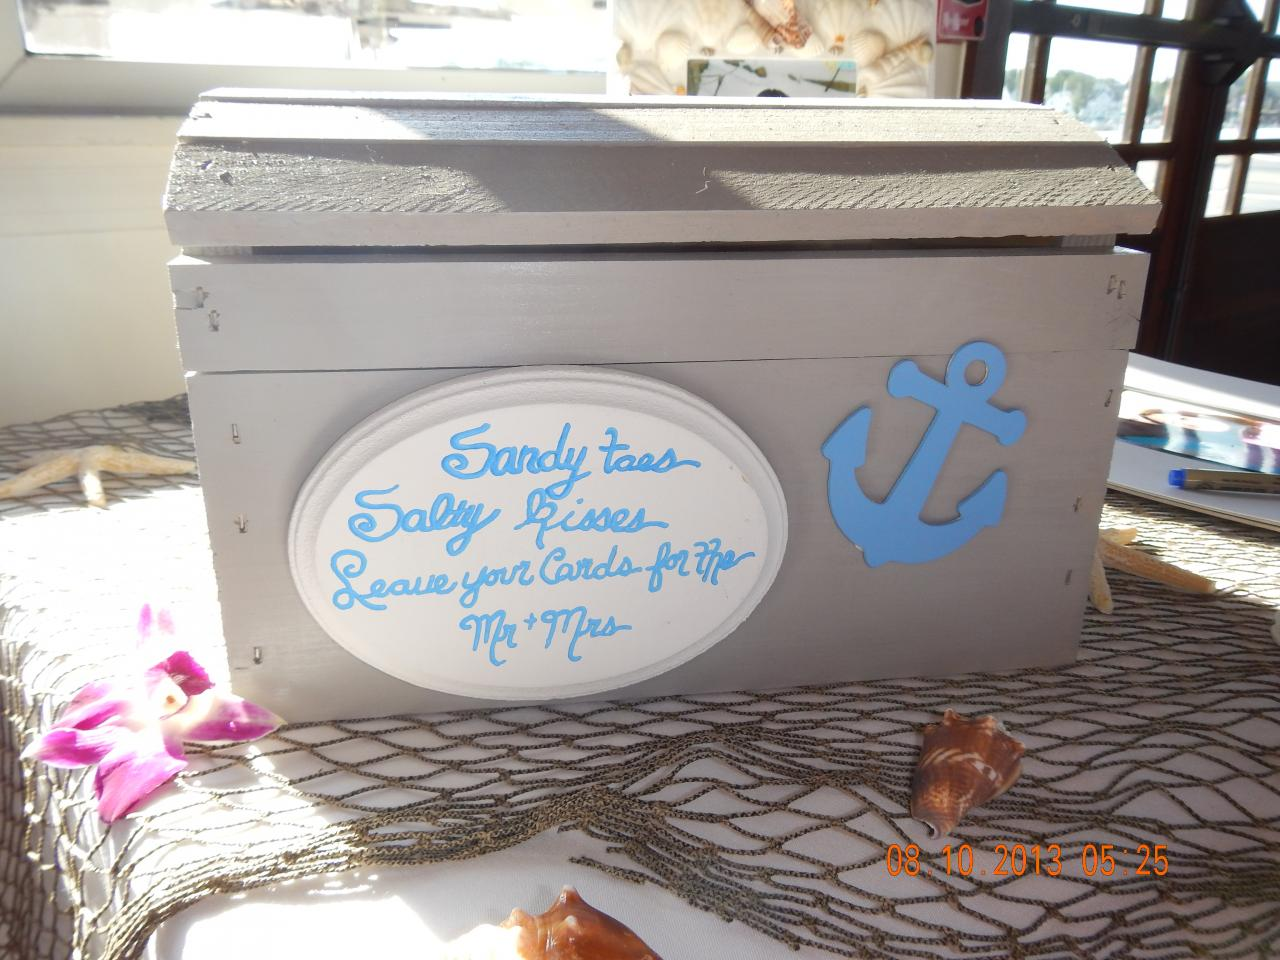 Wedding of Your Desire Wedding Ceremony Reception Ideas 7 – Wedding Boxes for Cards in Reception